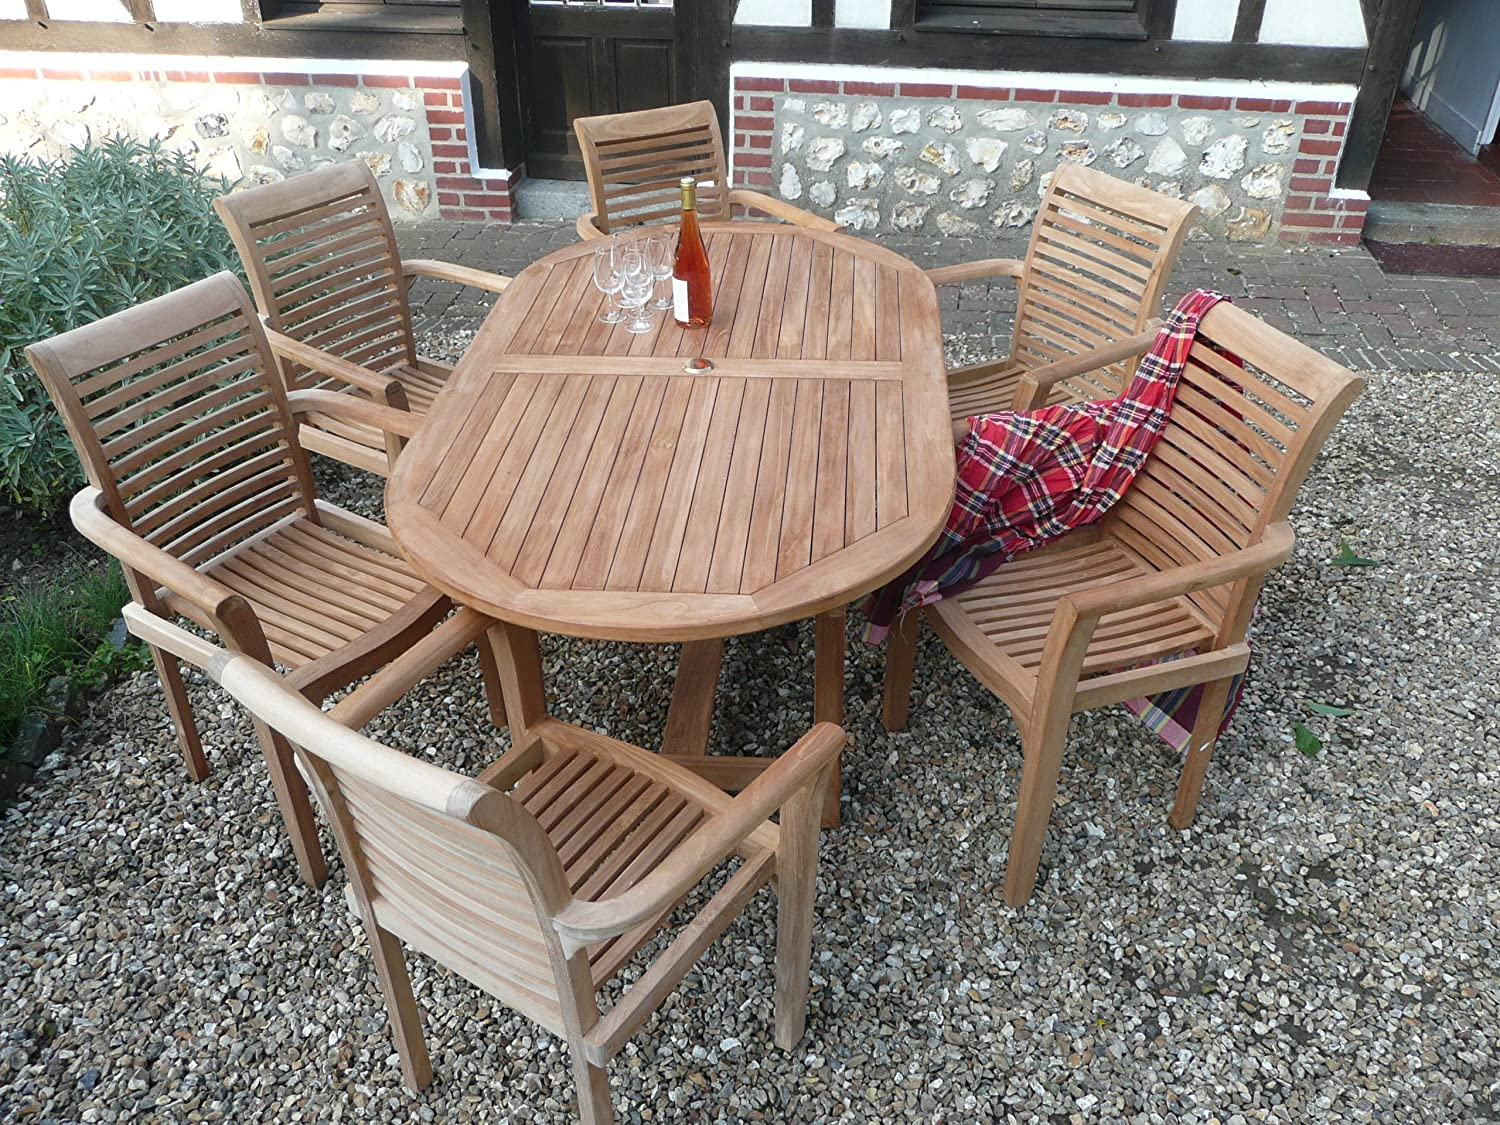 humber imports la baule teak garden furniture 13 piece patio set 60 off top grade teak 6 foot table 6 stacking chairs cushions amazoncouk garden